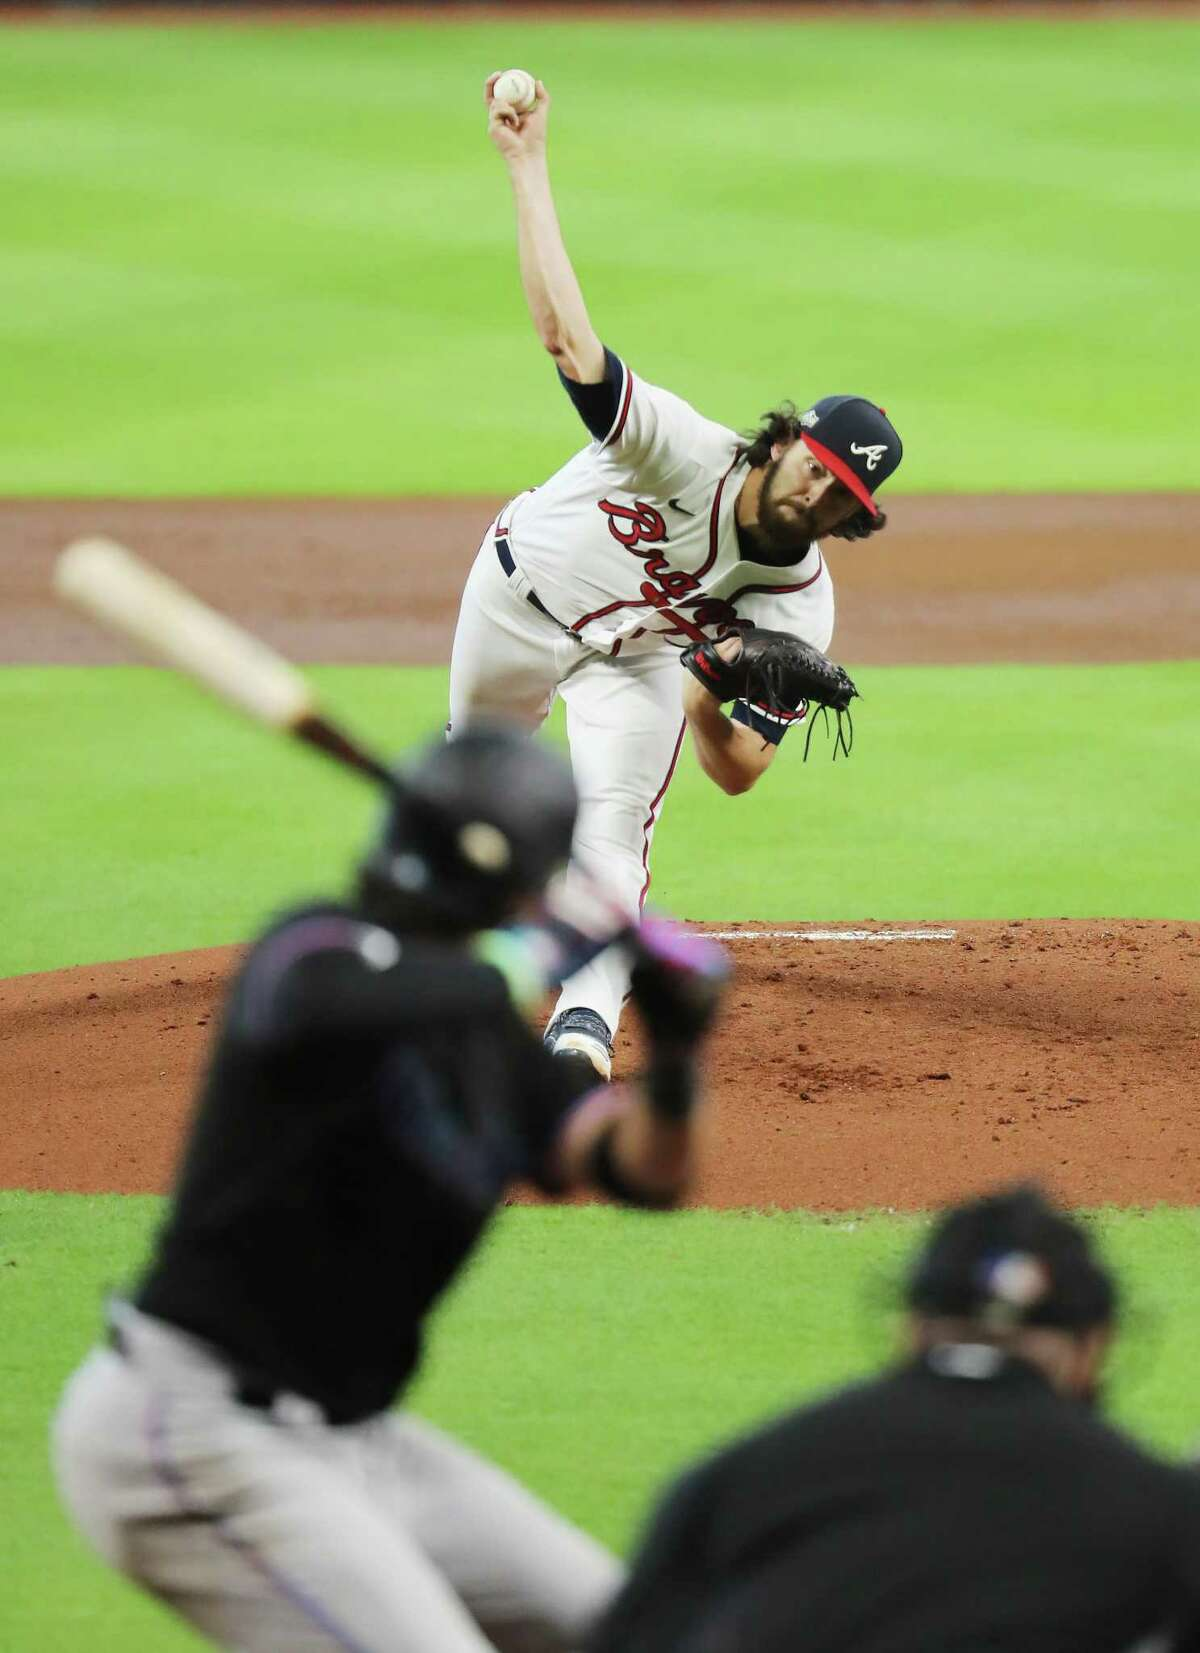 HOUSTON, TEXAS - OCTOBER 07: Ian Anderson #48 of the Atlanta Braves delivers a pitch against the Miami Marlins in Game Two of the National League Division Series at Minute Maid Park on October 07, 2020 in Houston, Texas.